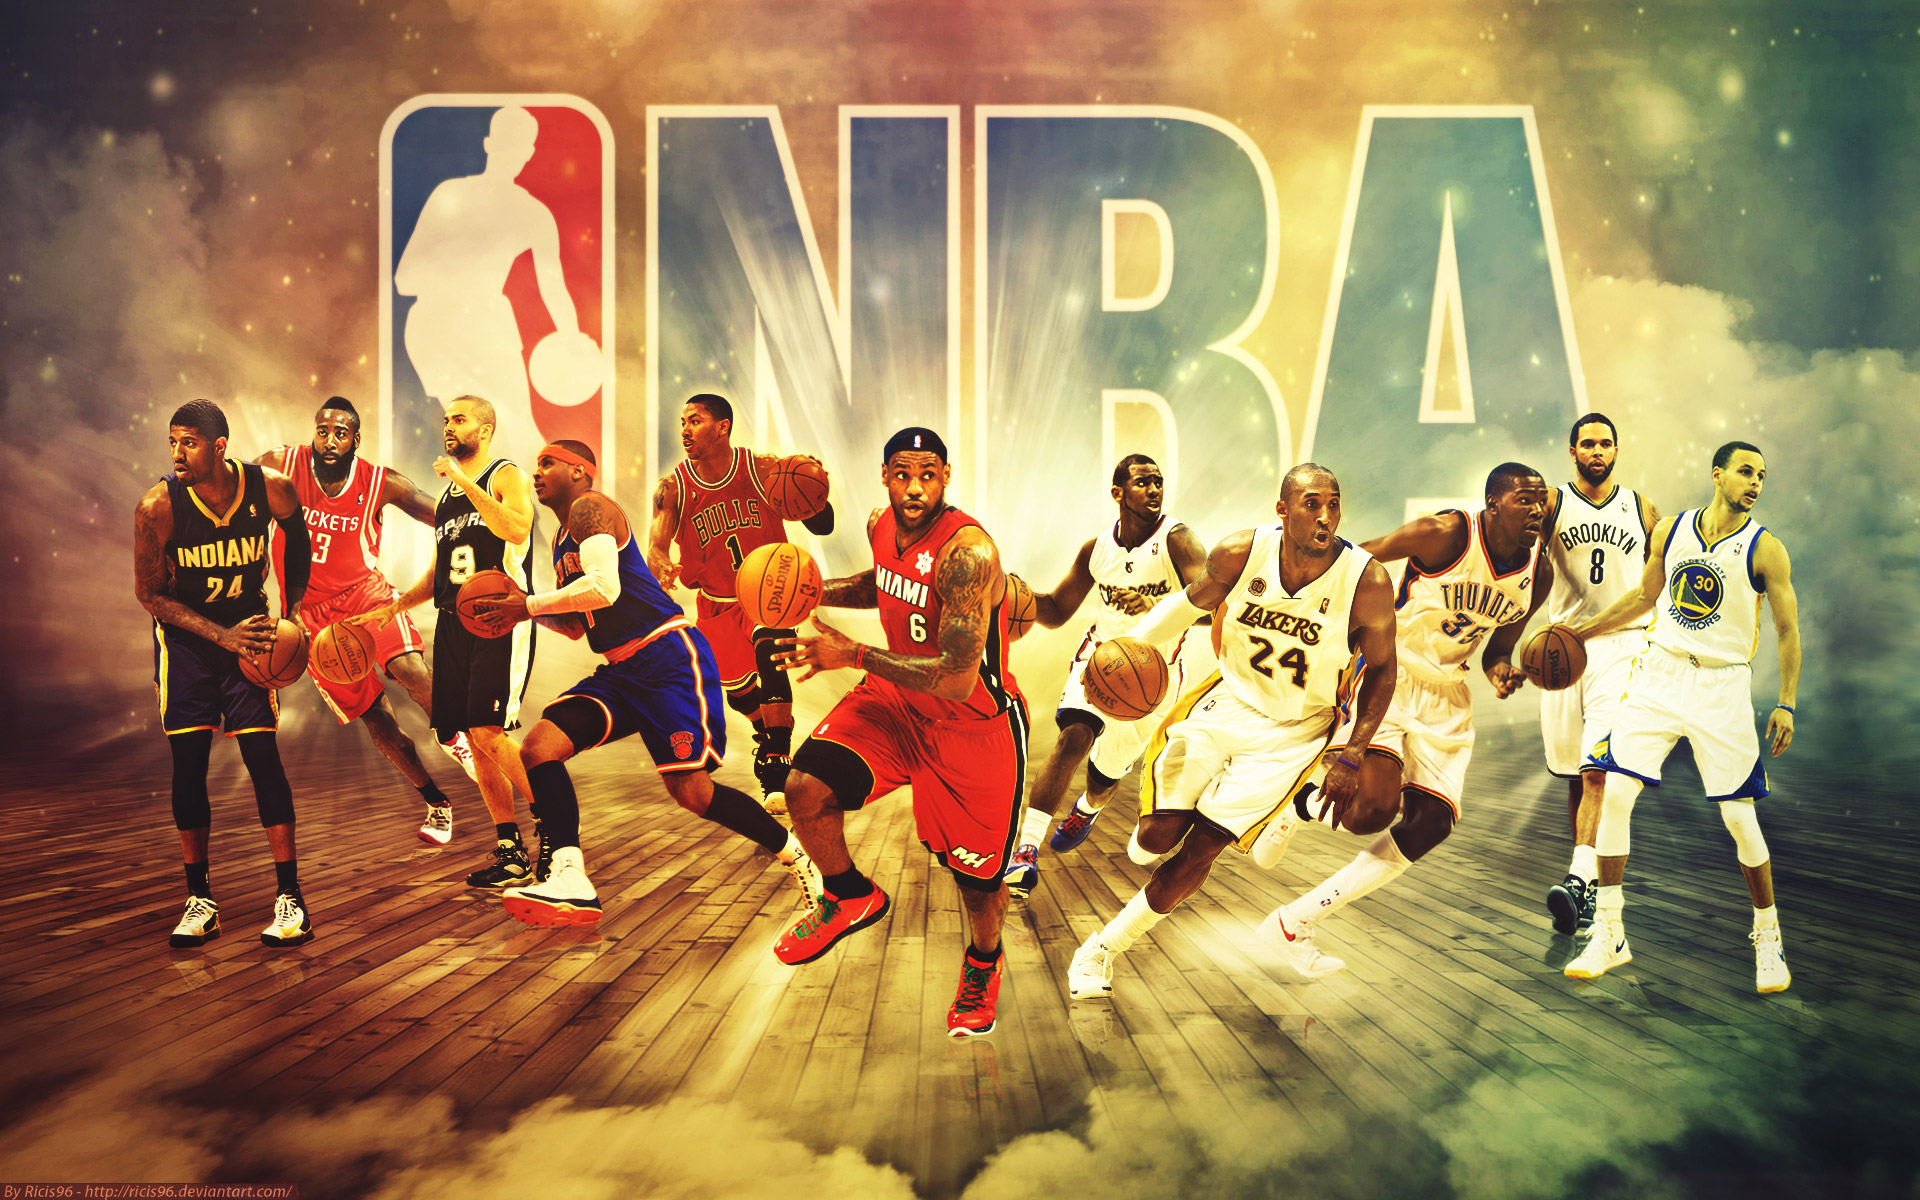 NBA Pictures Wallpaper